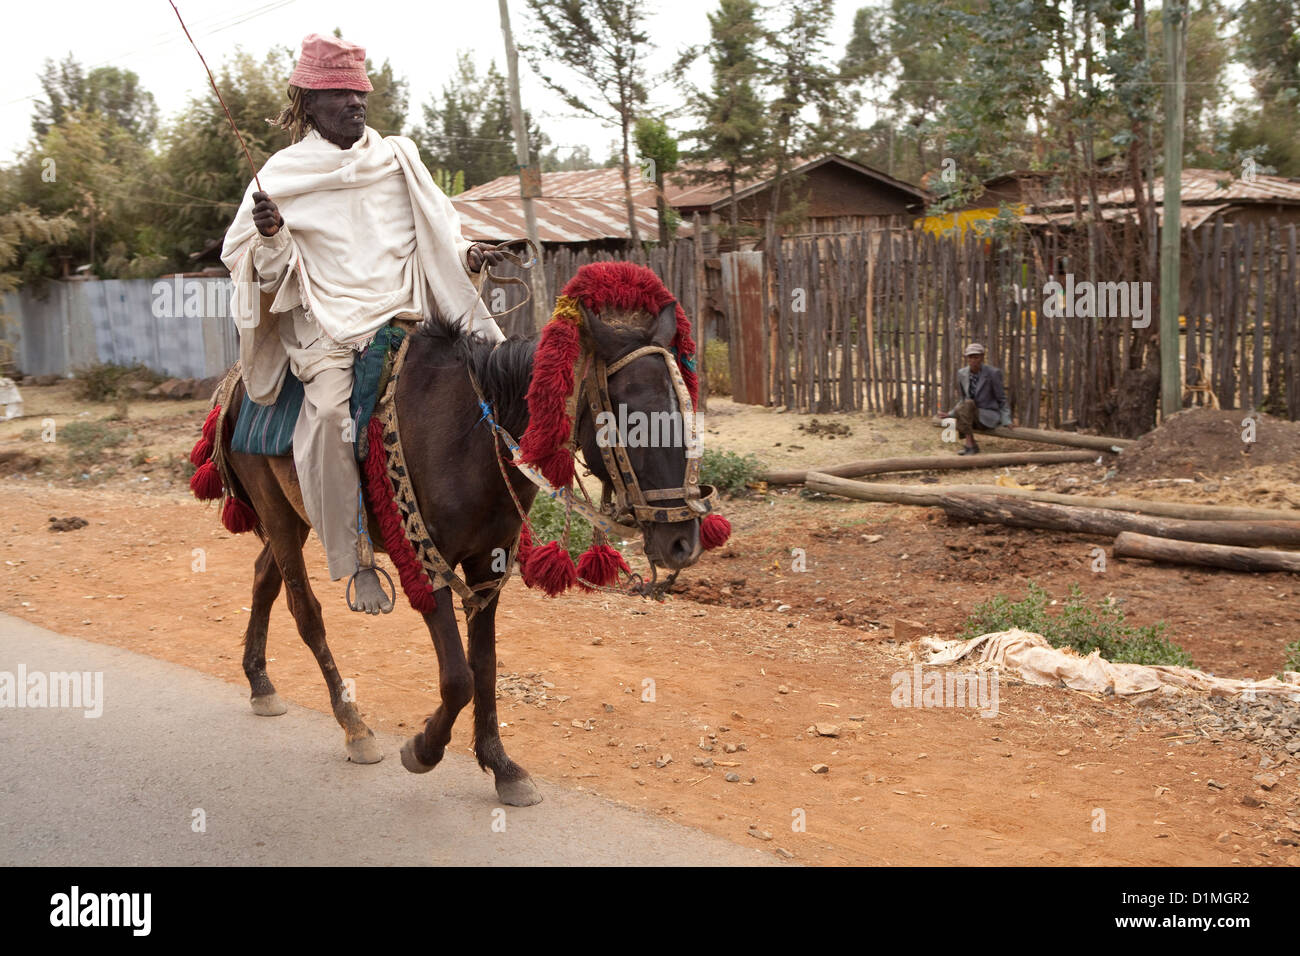 A man rides a horse in Amhara Region, Ethiopia. - Stock Image